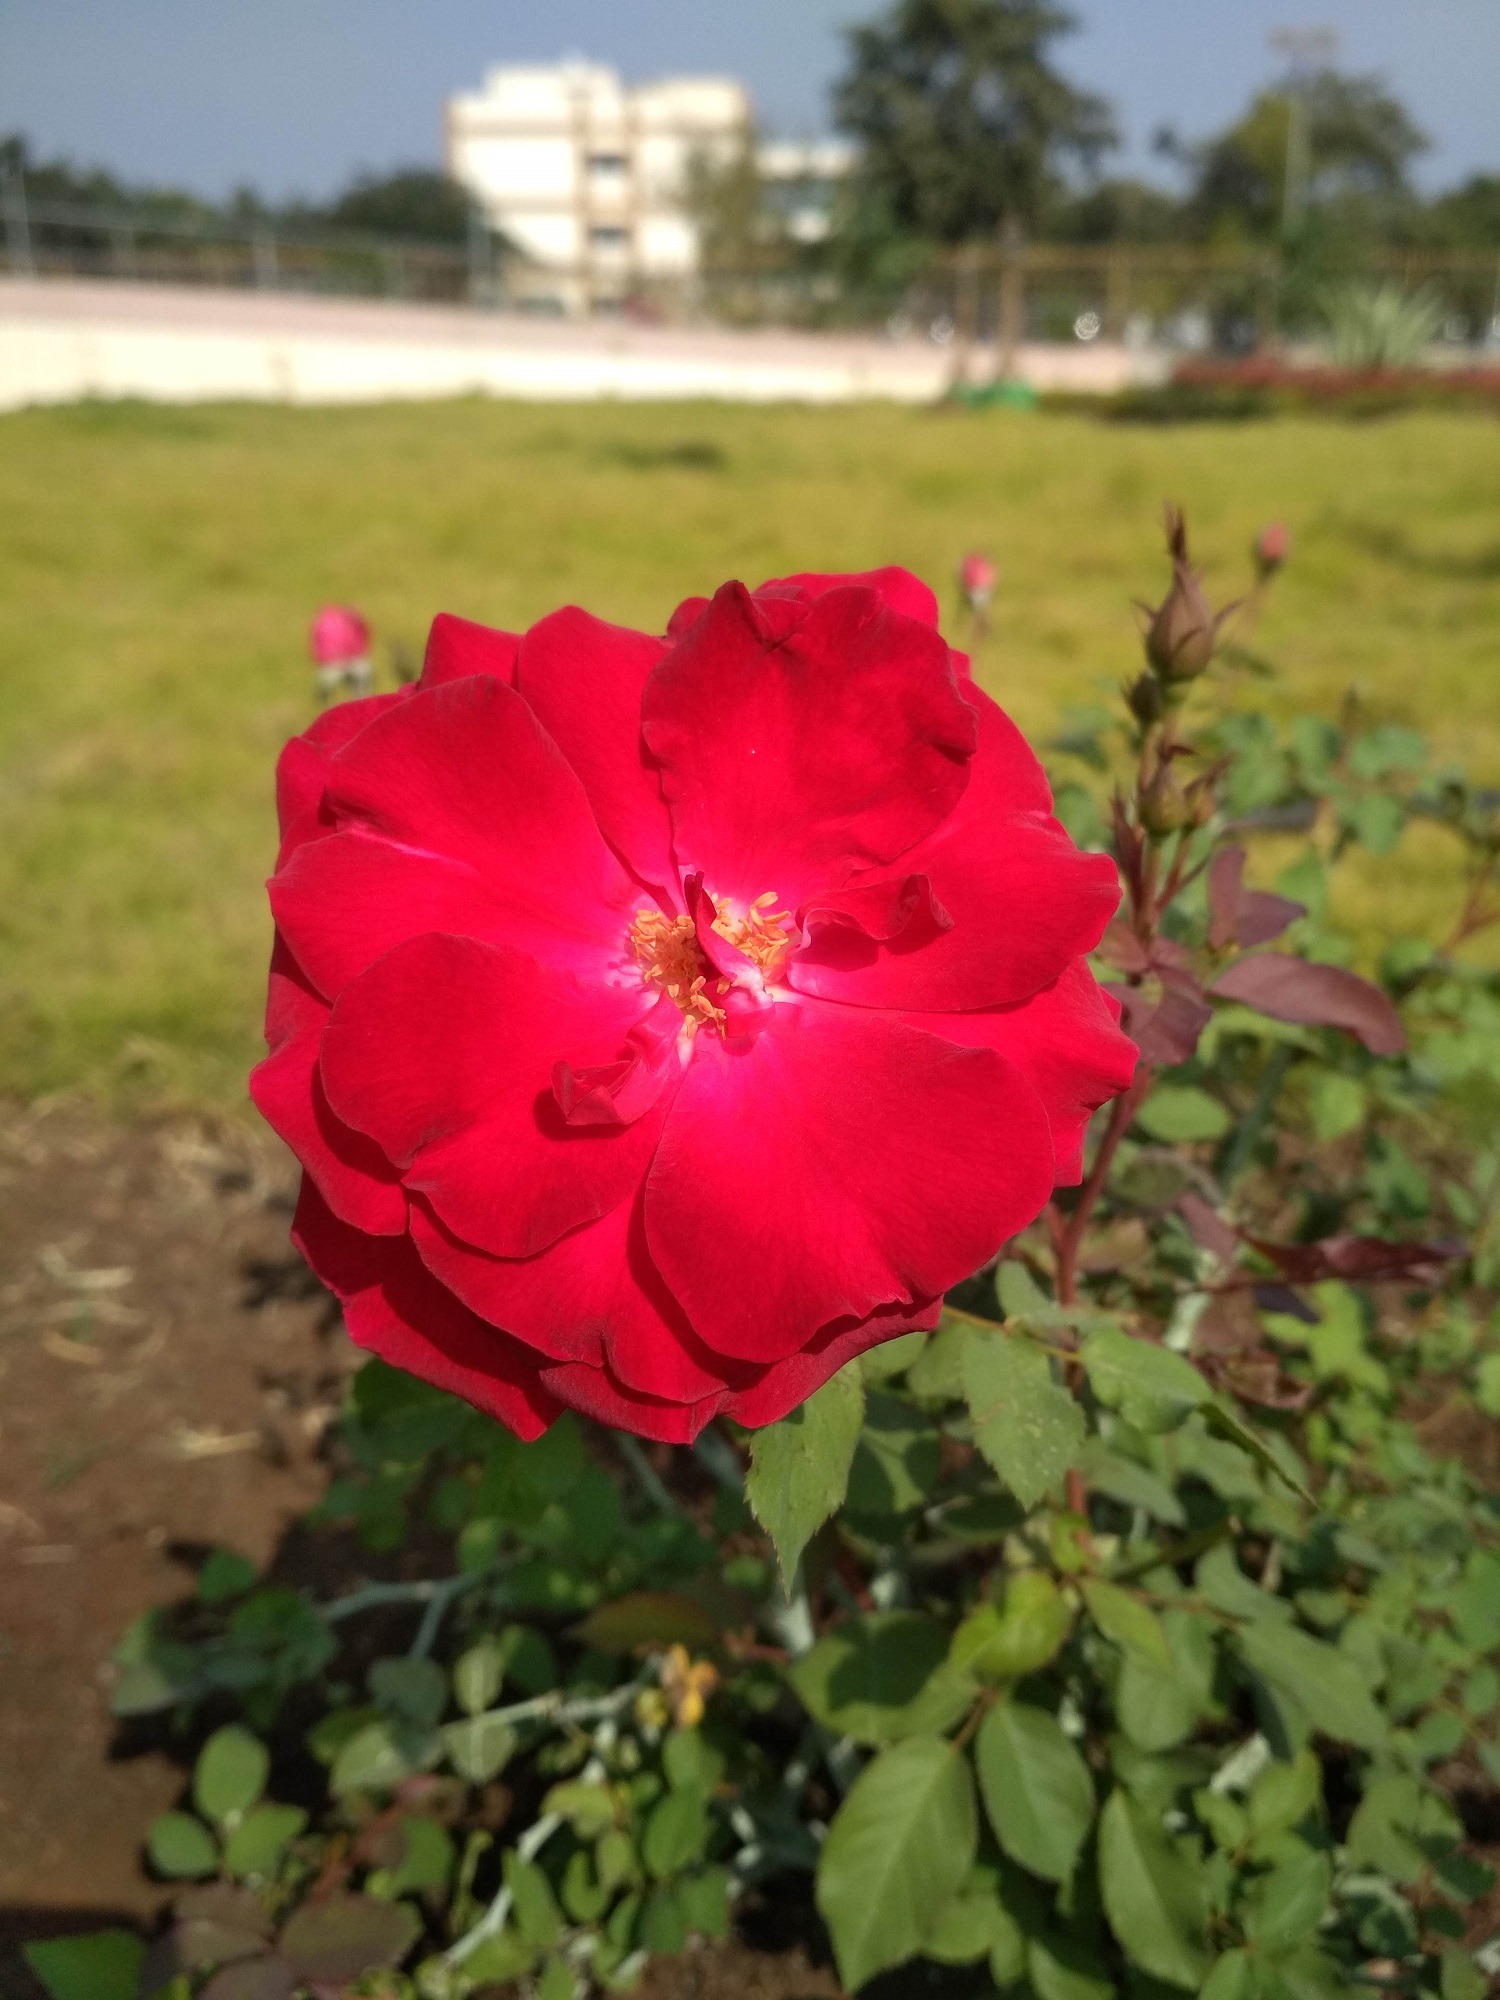 Beauty of RED ROSE is described in this picture.